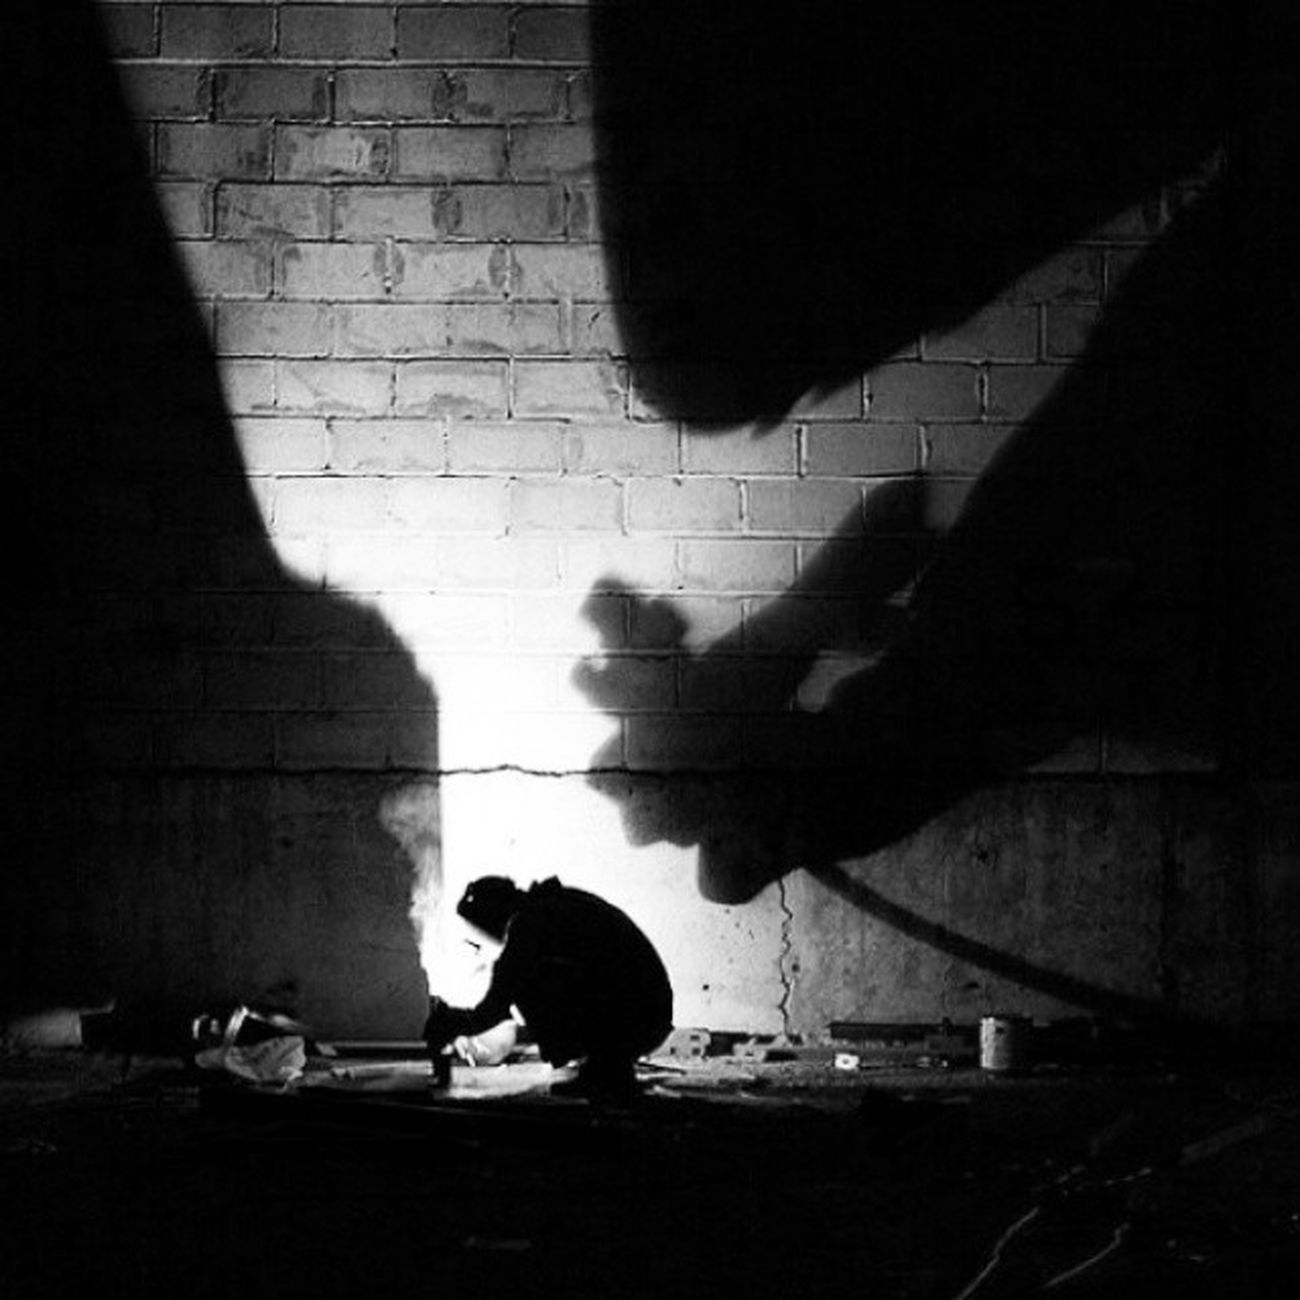 Kuwaitstreetphotographer Kuwaitstreetphotography Menatwork Ordinarypeople Peopleinthestreet Everydaypeople Shadowplay looming shadow by Cy Mercado on Flickr. Just follow this link to see and comment on this photo: https://flic.kr/p/cngicL